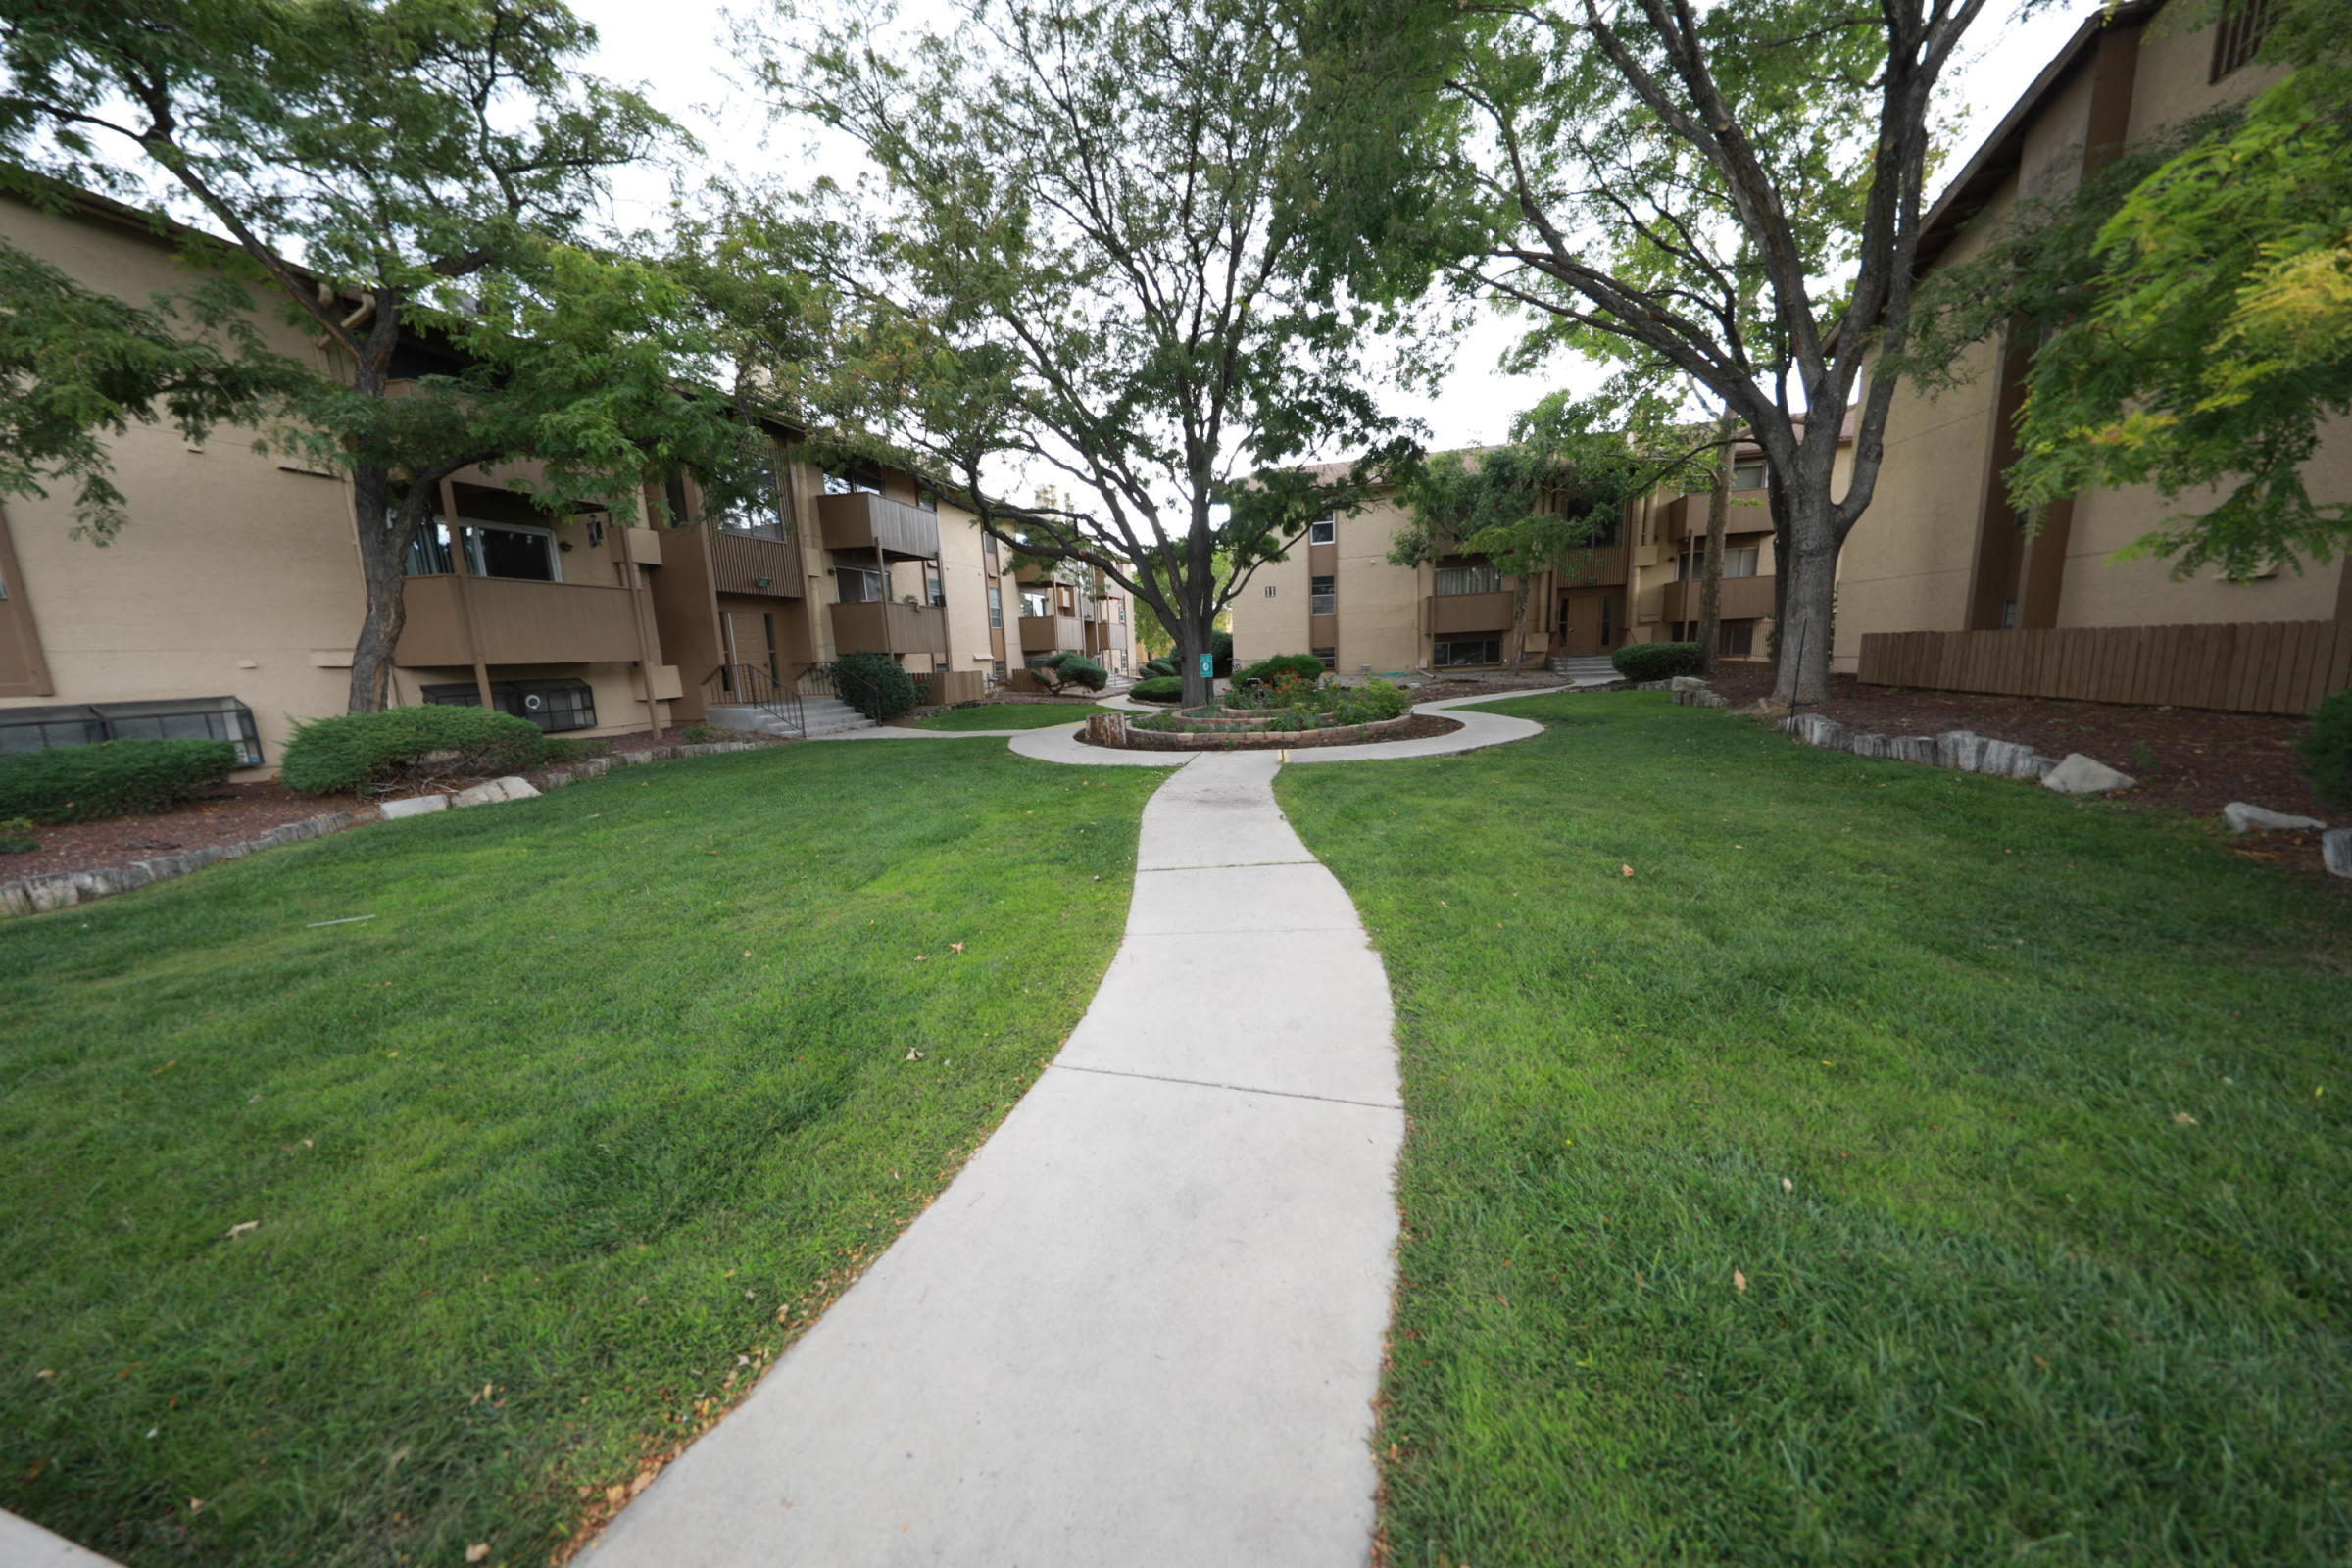 Welcome home to this cute condo in a quiet, gated community. This home includes a new range and new fixtures. You'll also enjoy updated flooring throughout. The furnace is newer too! This property has a swimming pool, sauna, gym and clubhouse! This is a great place to call home!